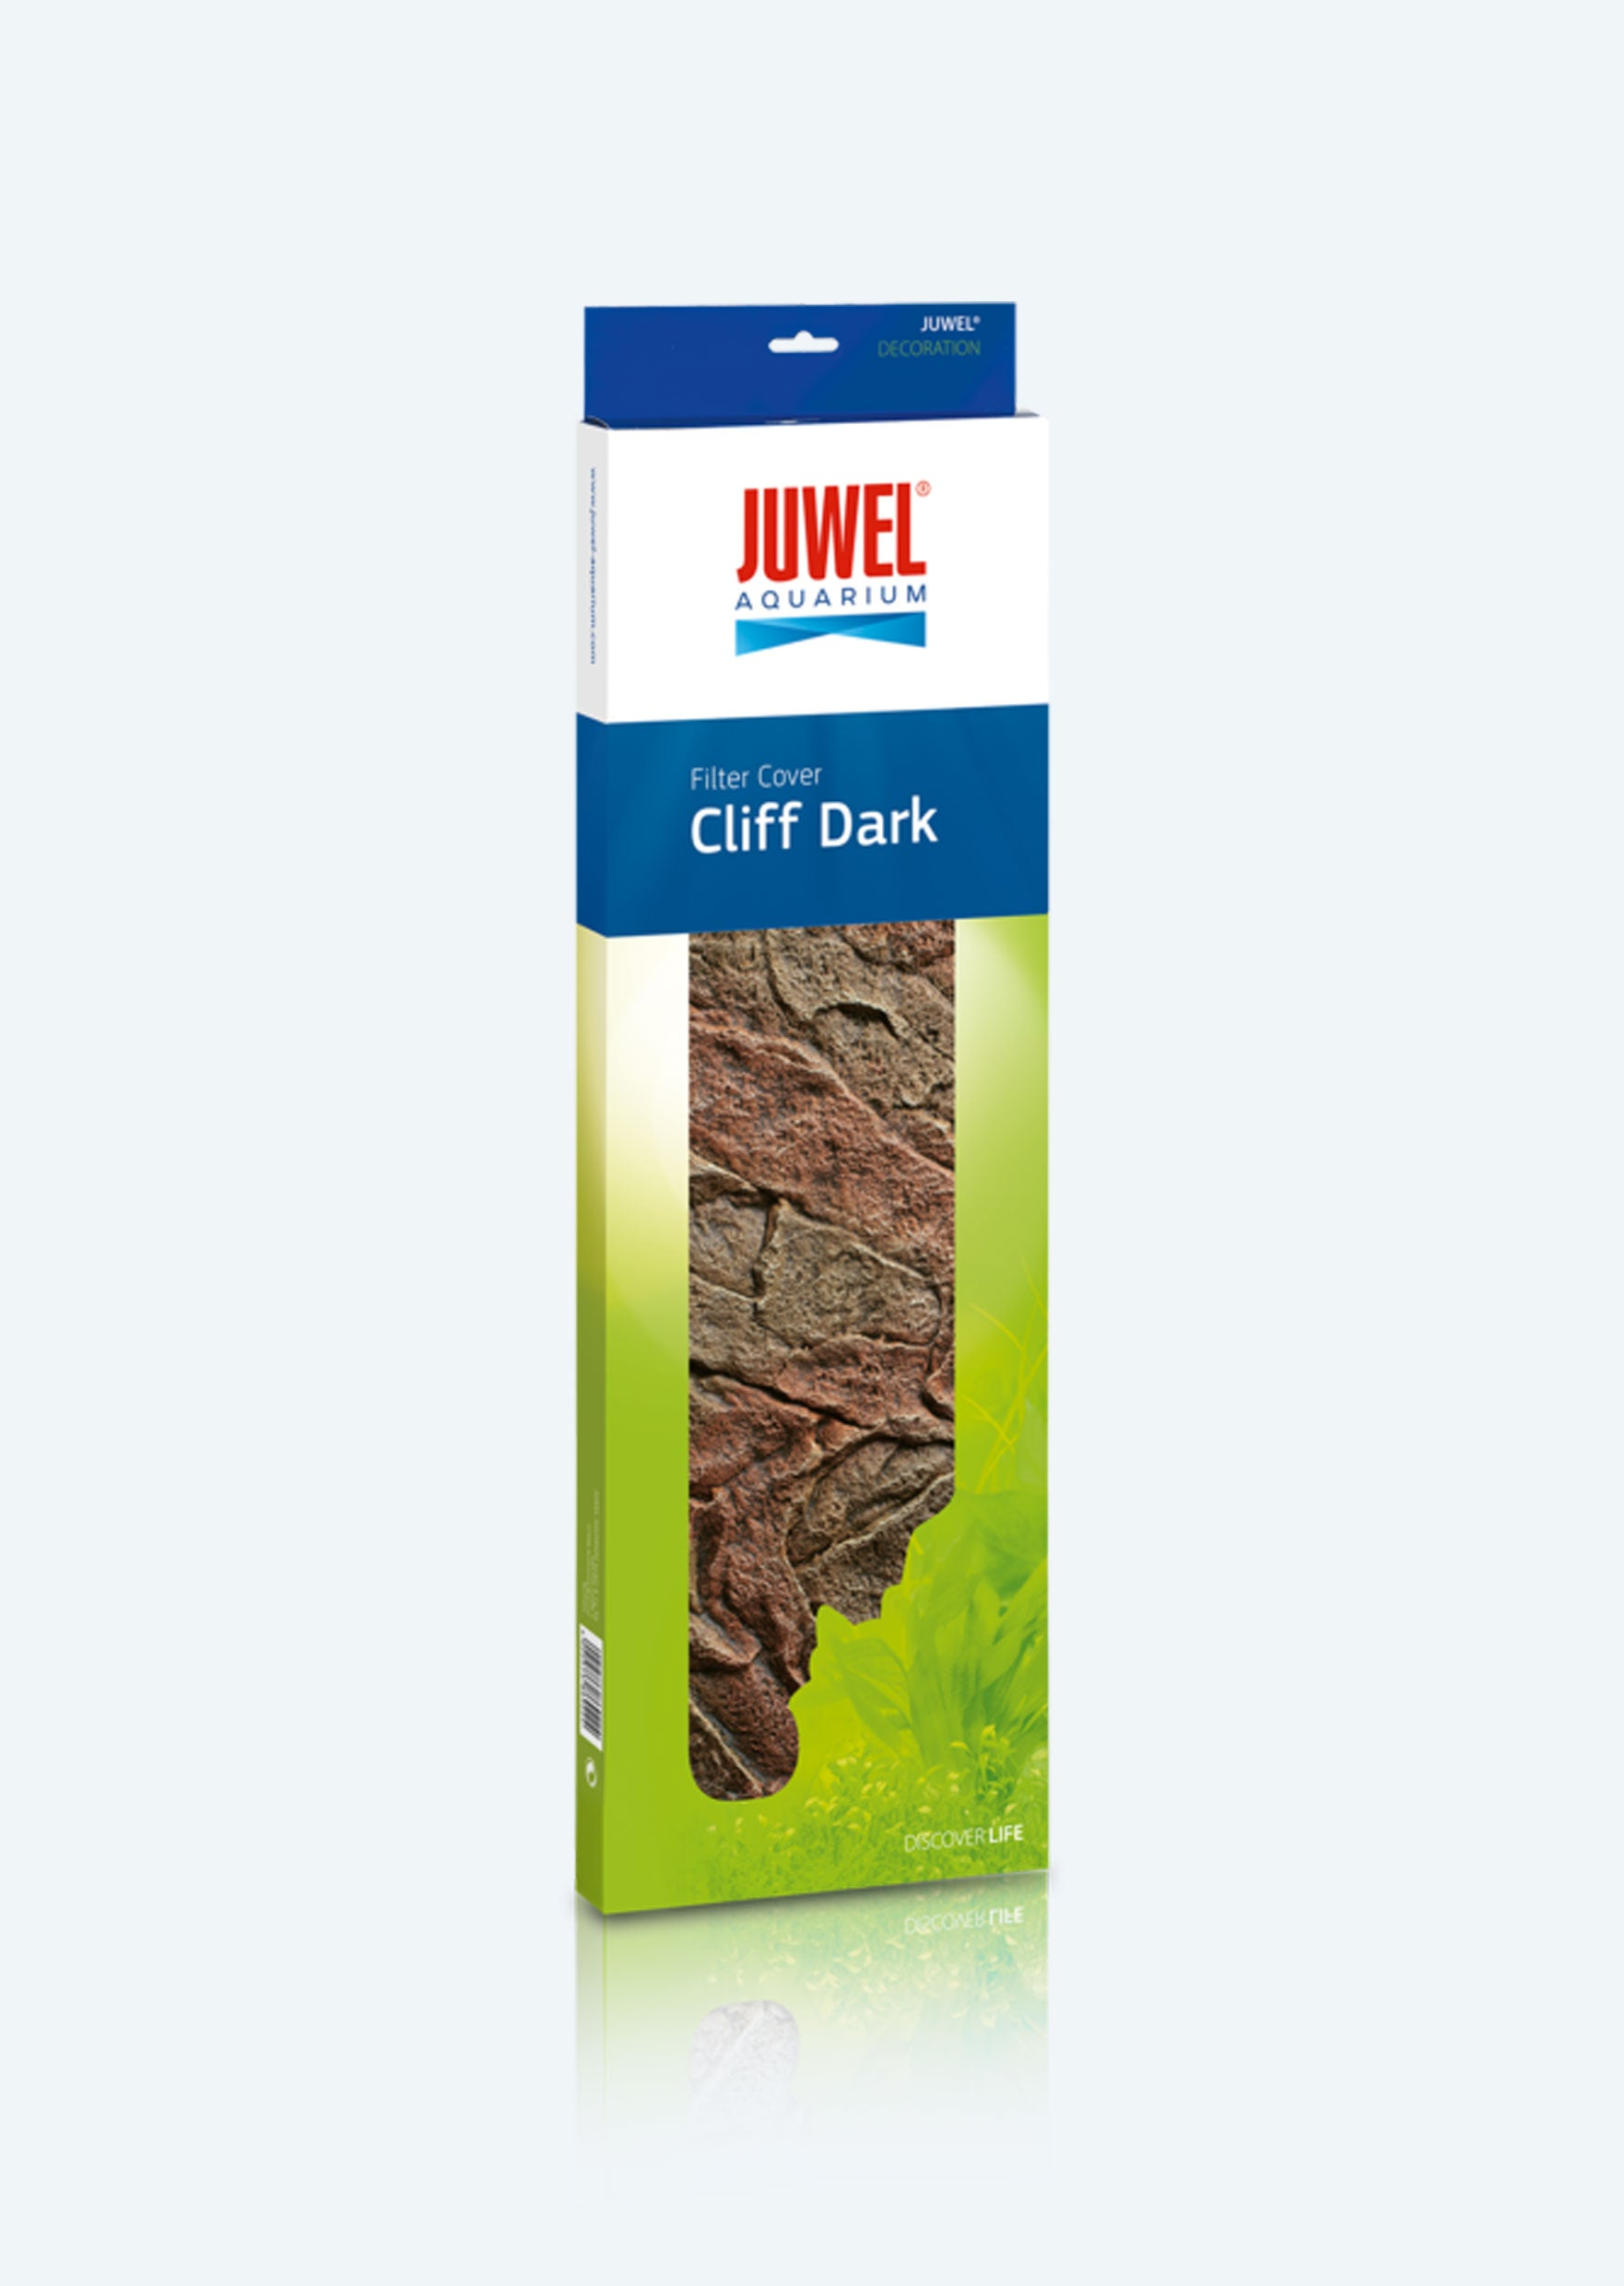 JUWEL Filter Cover: Cliff Dark